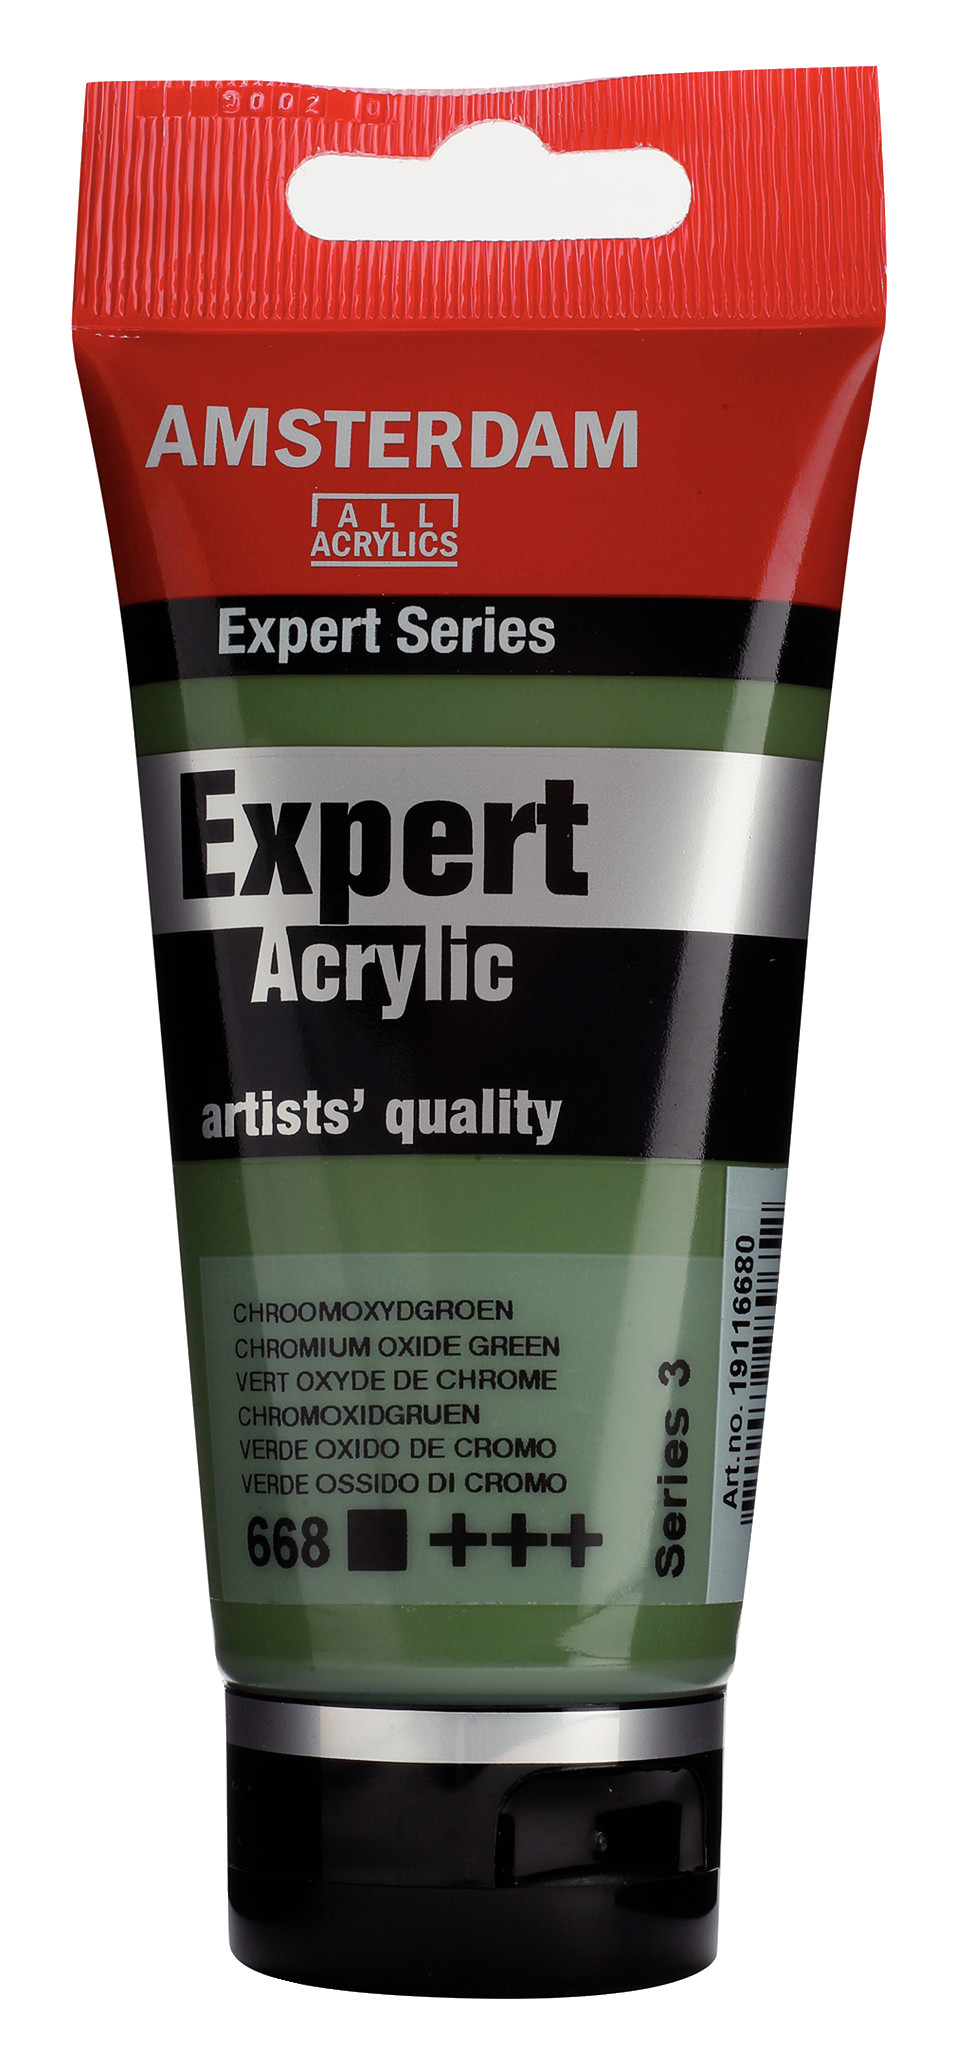 Amsterdam Expert Series Acrylic Tube 75 ml Chromium Oxide Green  668